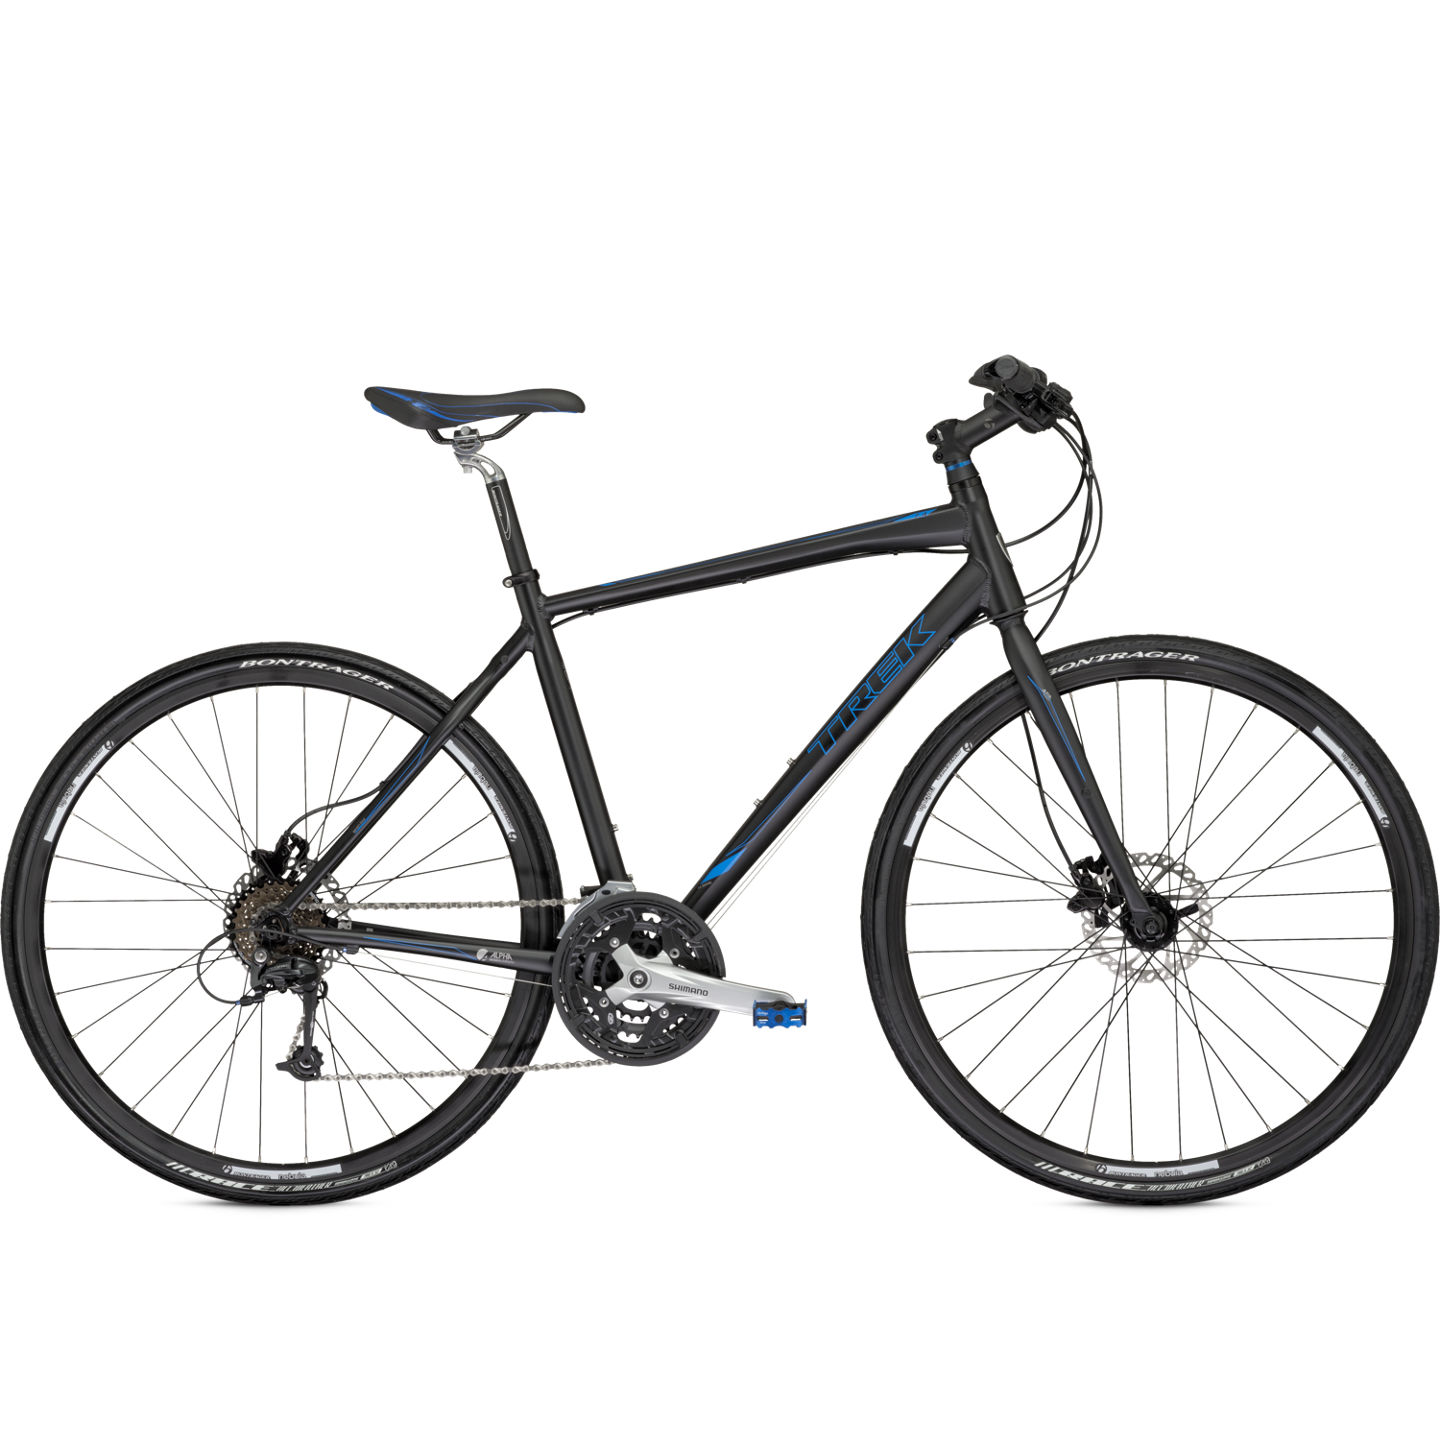 Trek 7 4 FX Disc - Bird Legs Bicycles | Freedom on Wheels